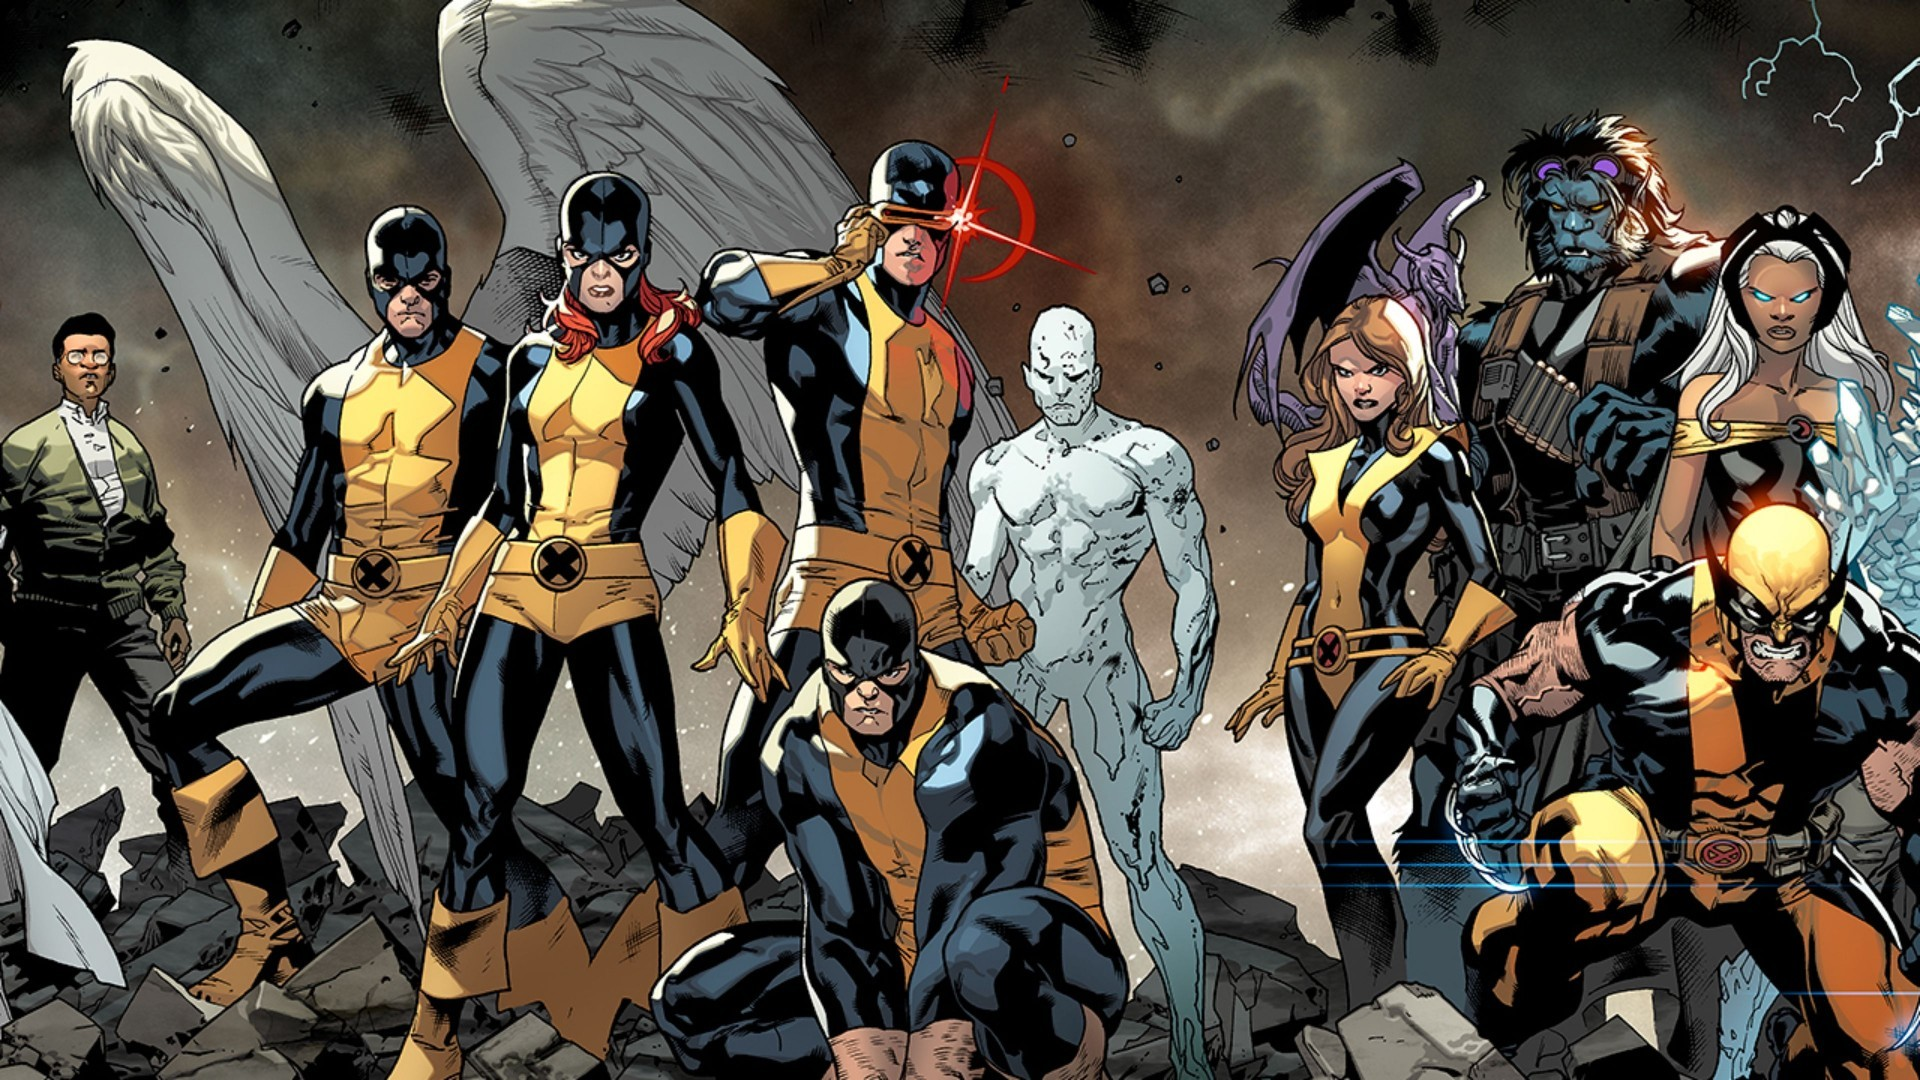 1920x1080 X Men 4 Wallpapers